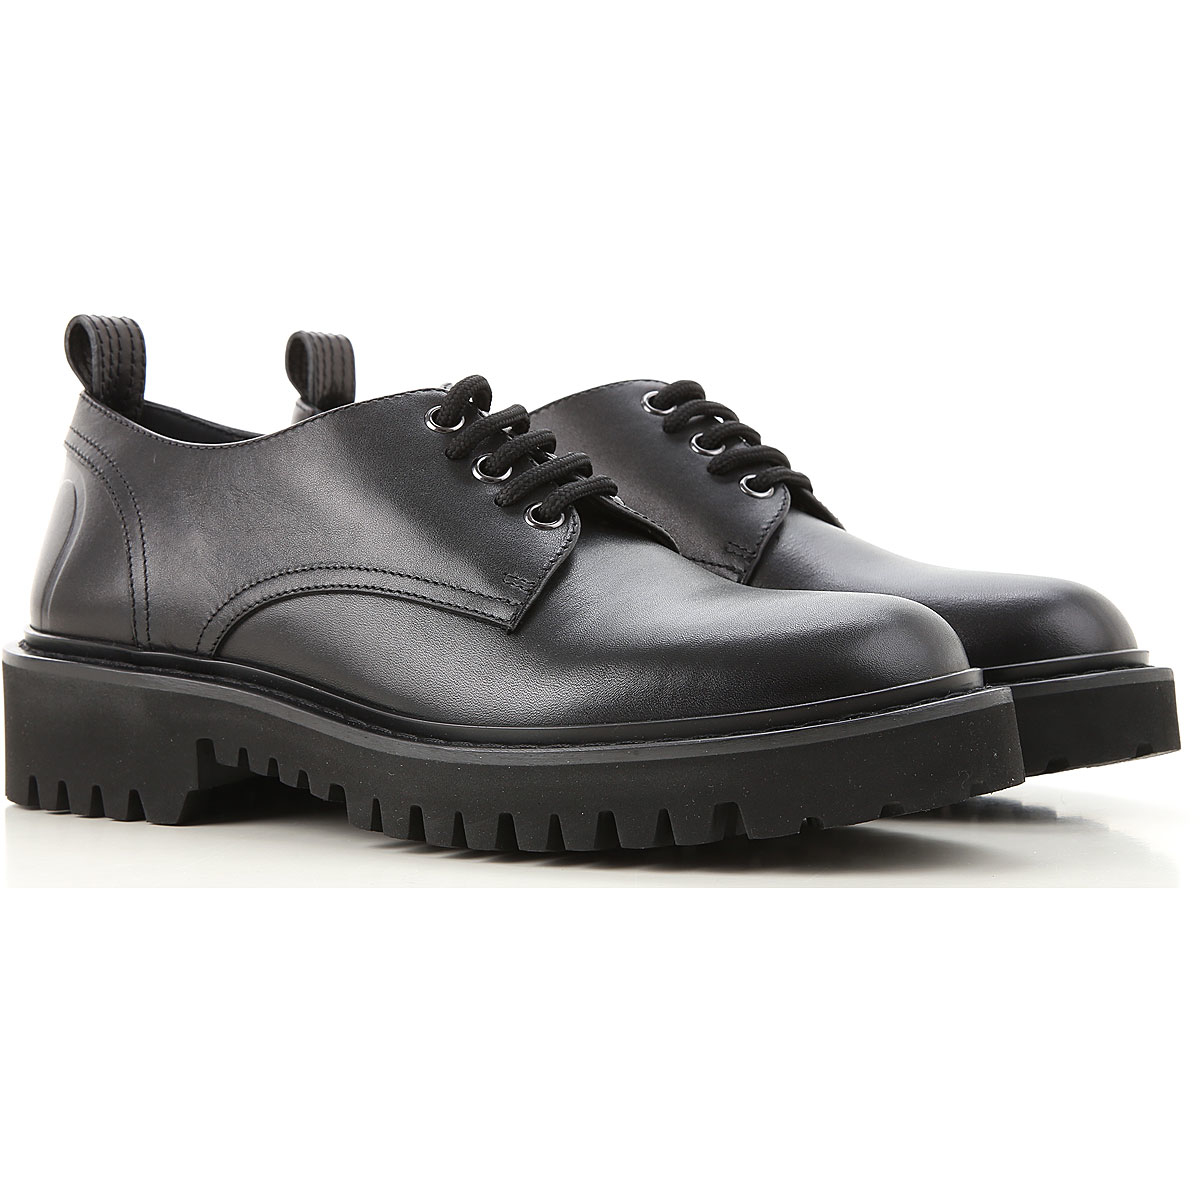 Valentino Garavani Lace Up Shoes for Men Oxfords Derbies and Brogues Canada - GOOFASH - Womens LEATHER SHOES